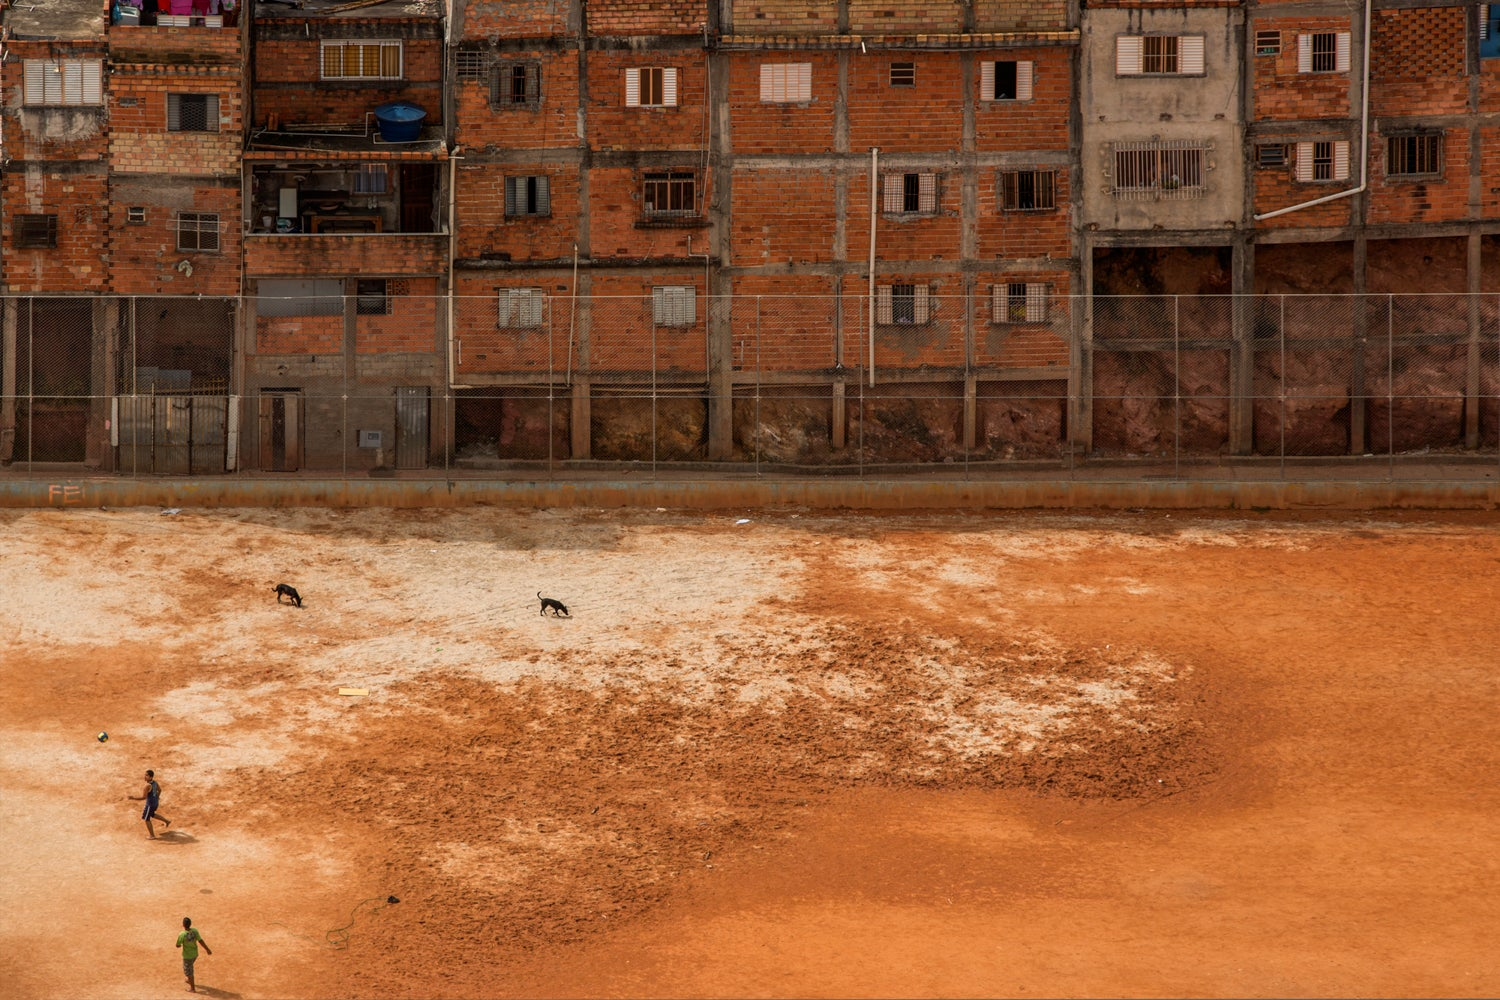 Amazing images of Brazilian soccer fields as I've never seen them before